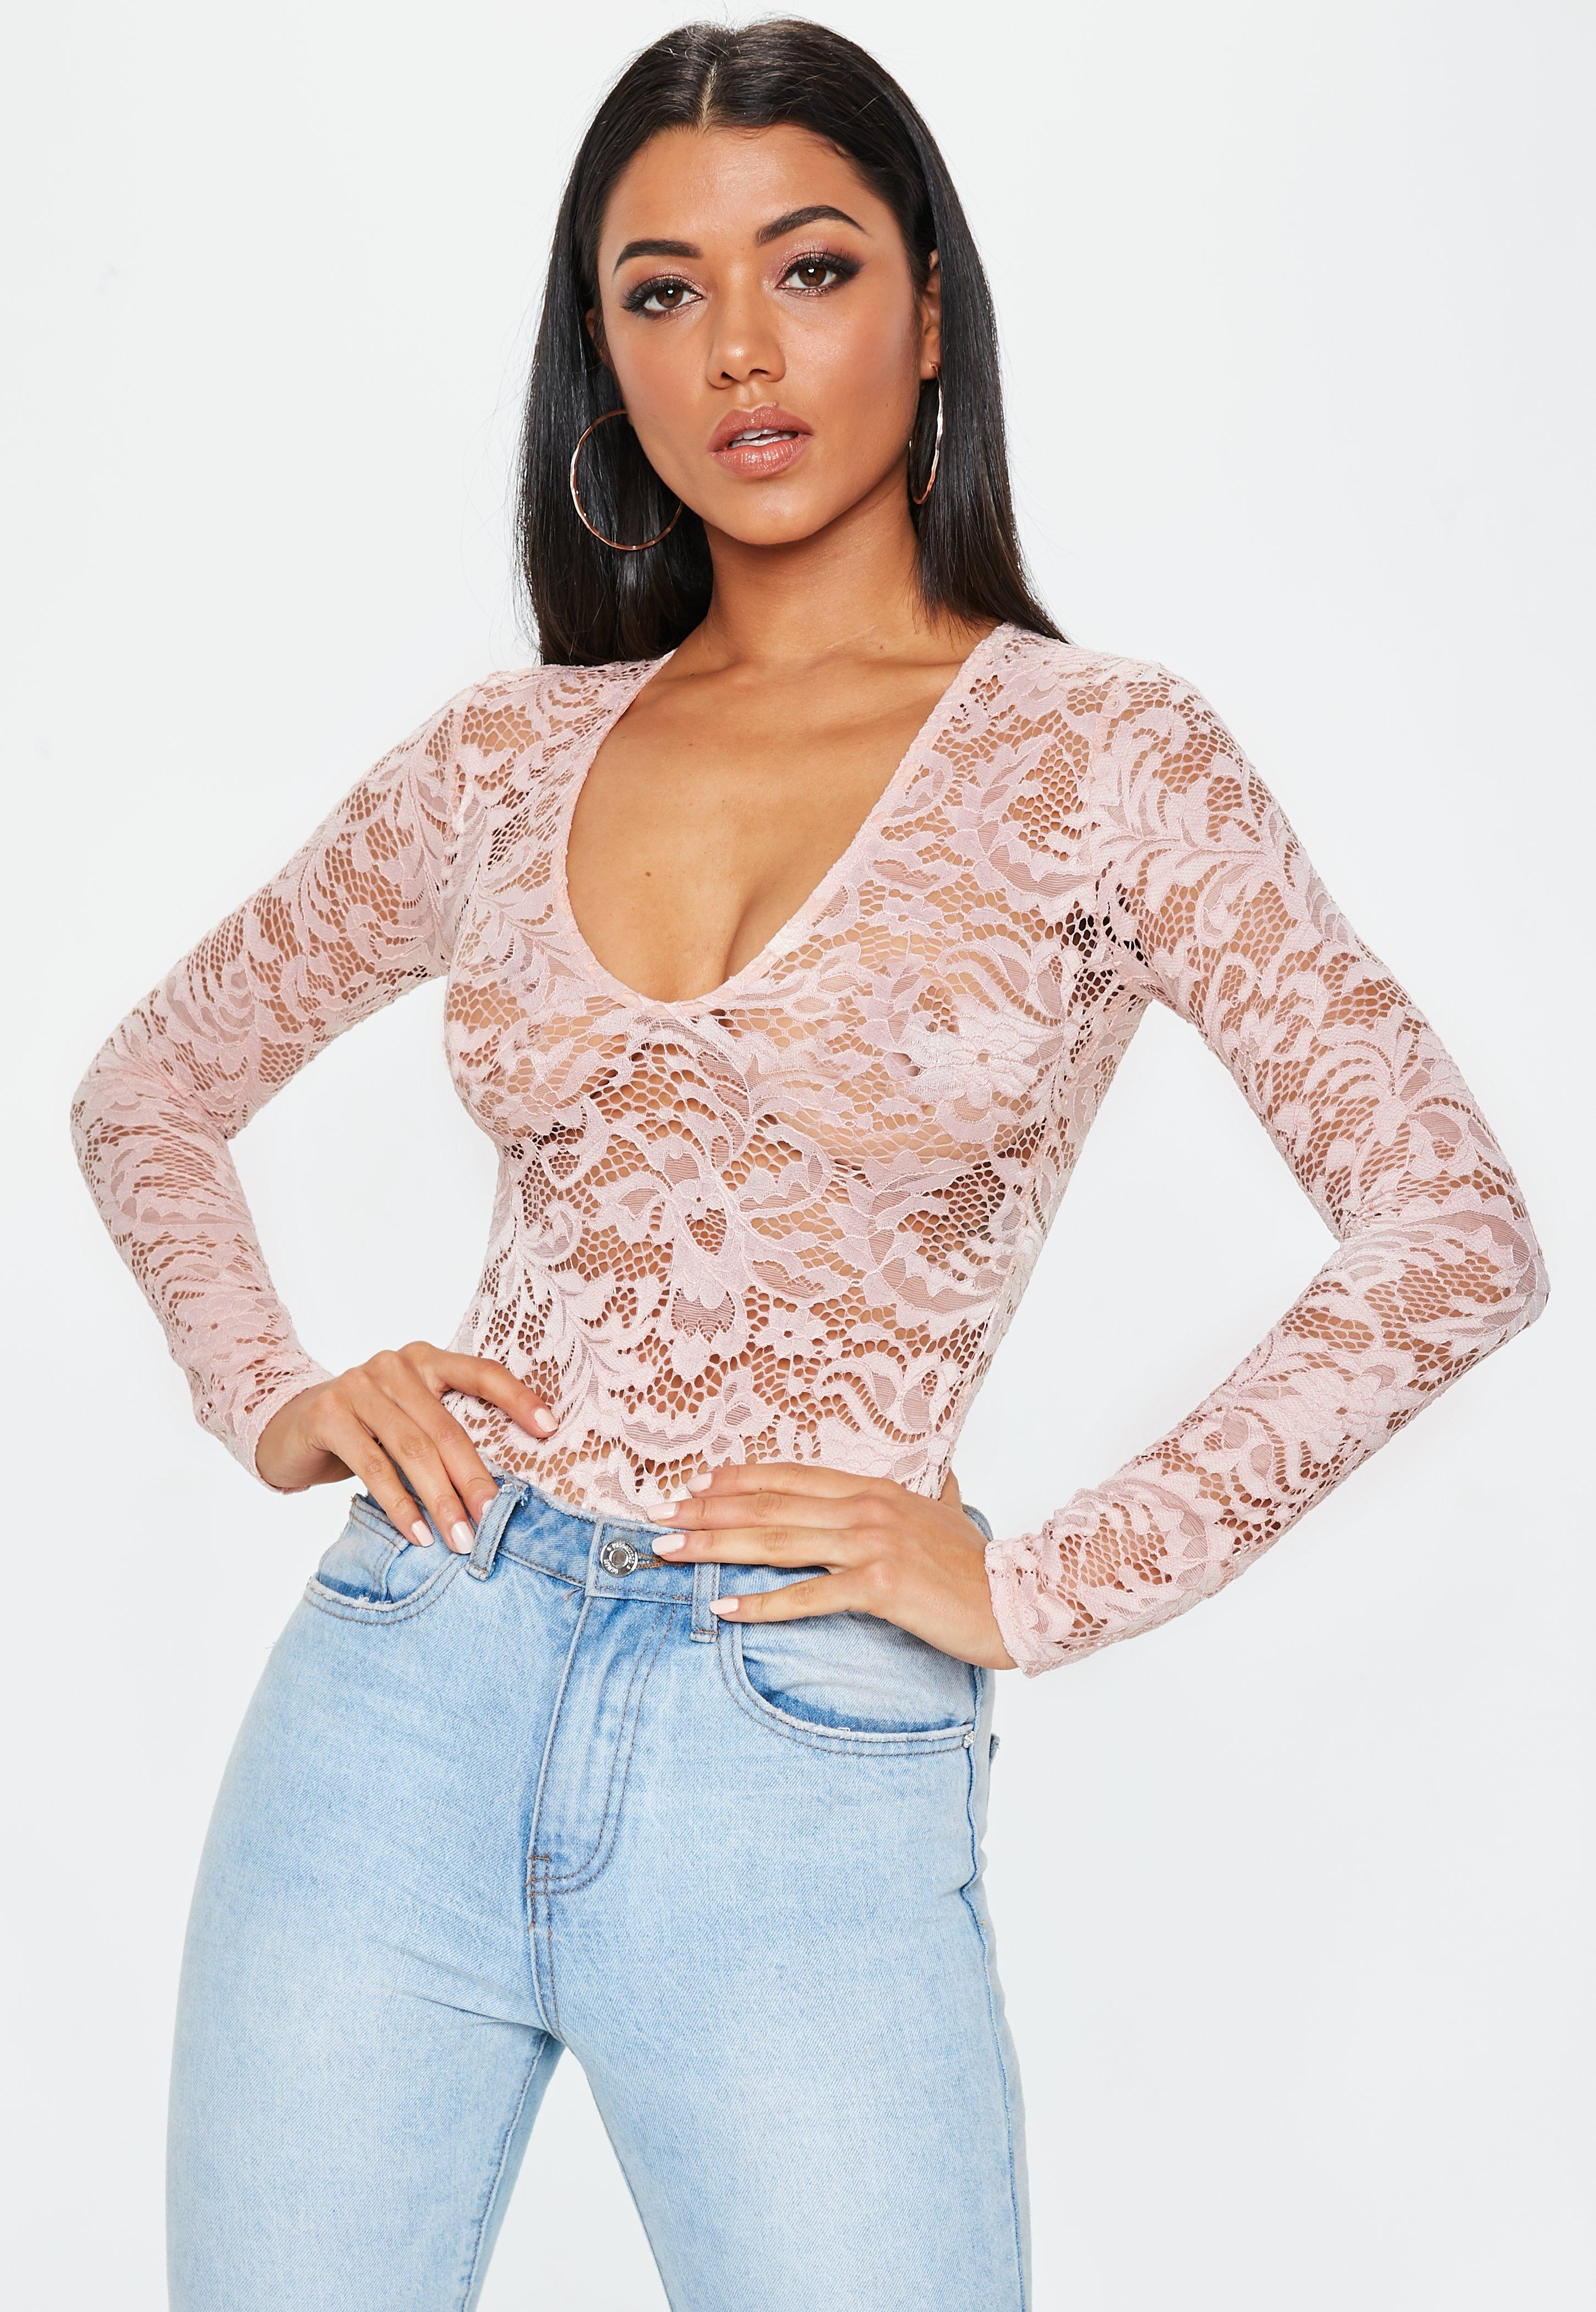 Lyst - Missguided Tall Pink Long Sleeve Lace Bodysuit in Pink c9f50052e